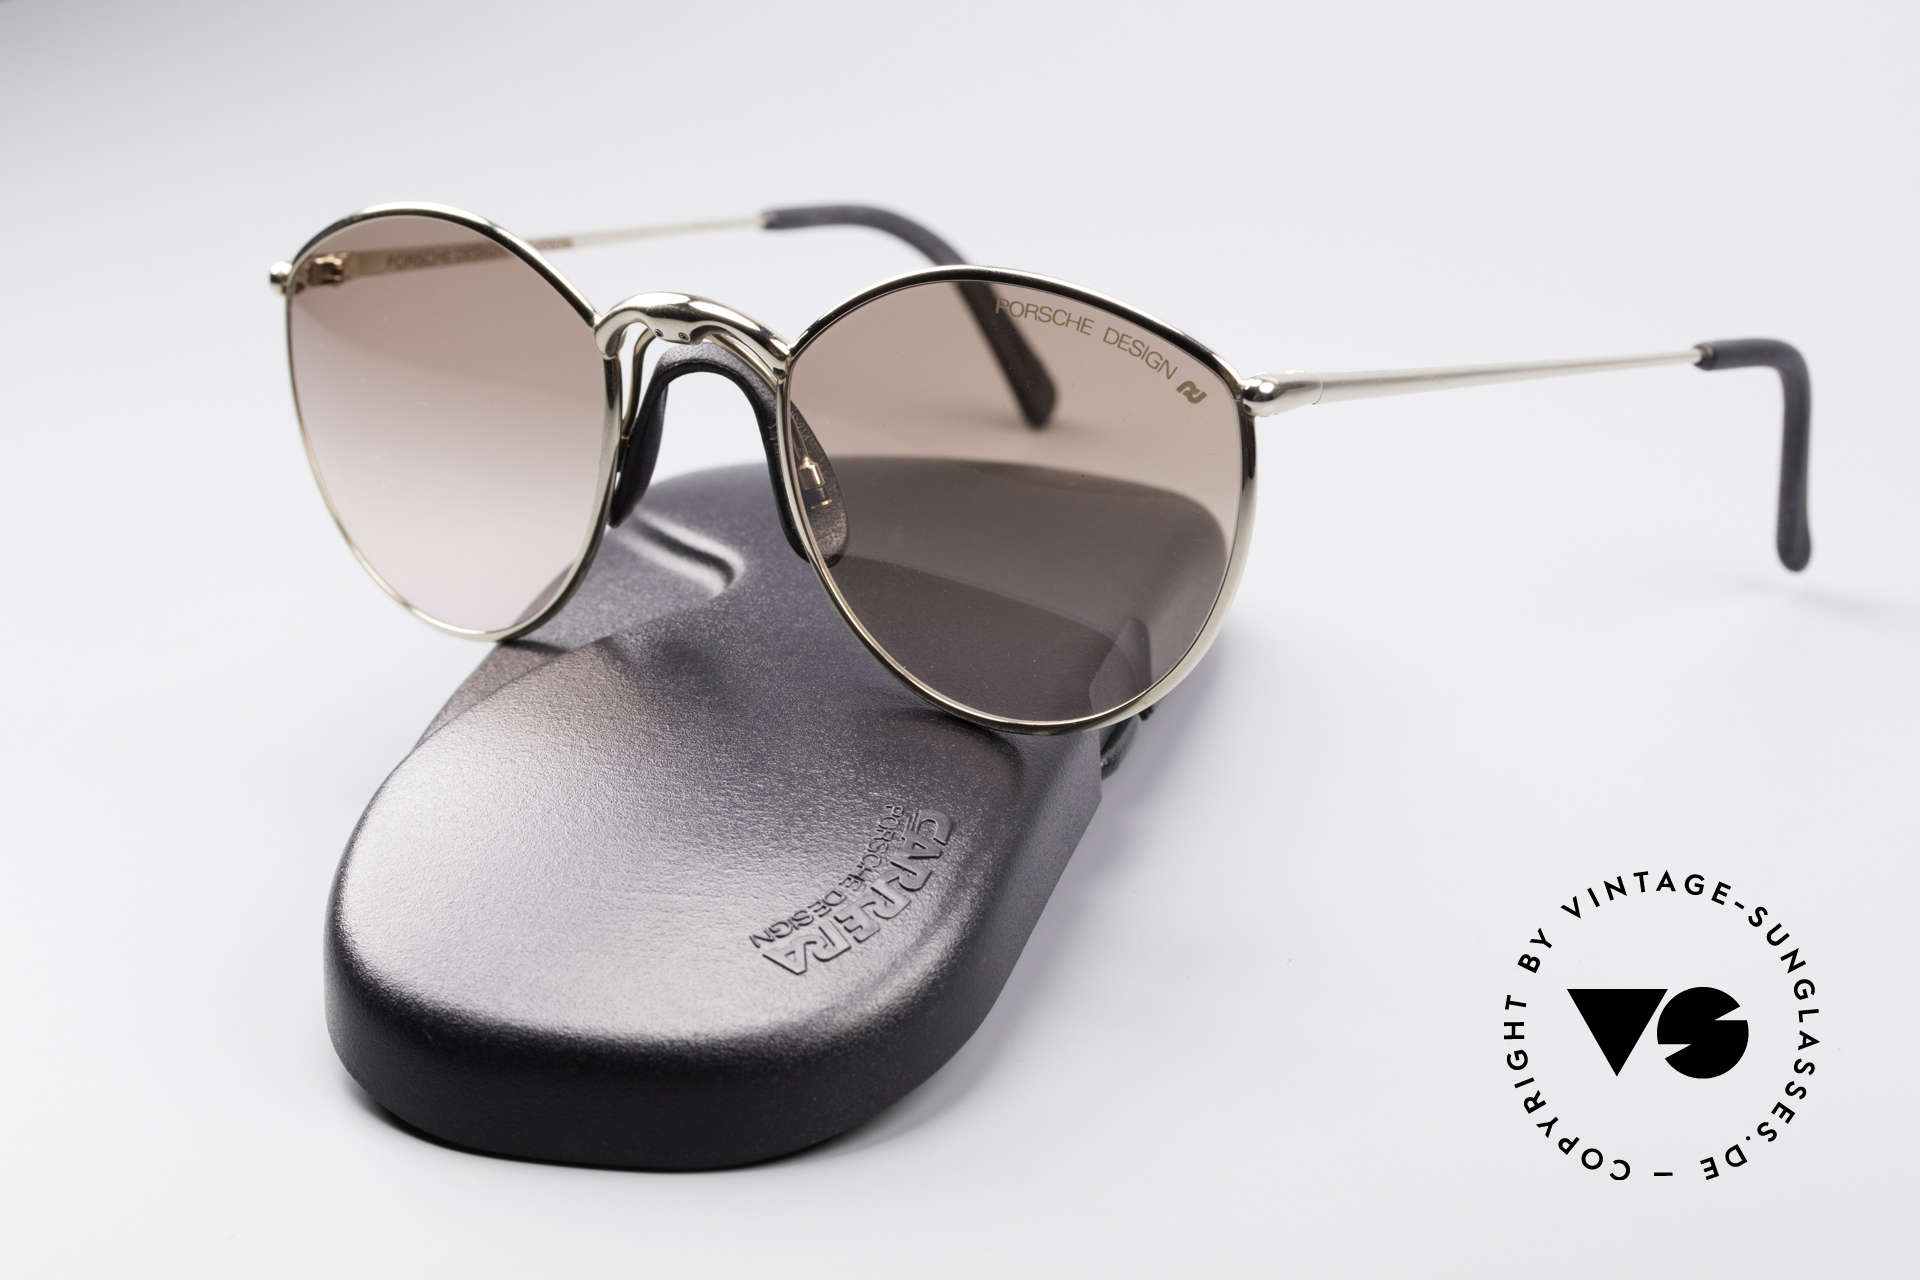 Porsche 5638 True 90's Vintage Glasses, unworn (like all our vintage PORSCHE Design shades), Made for Men and Women